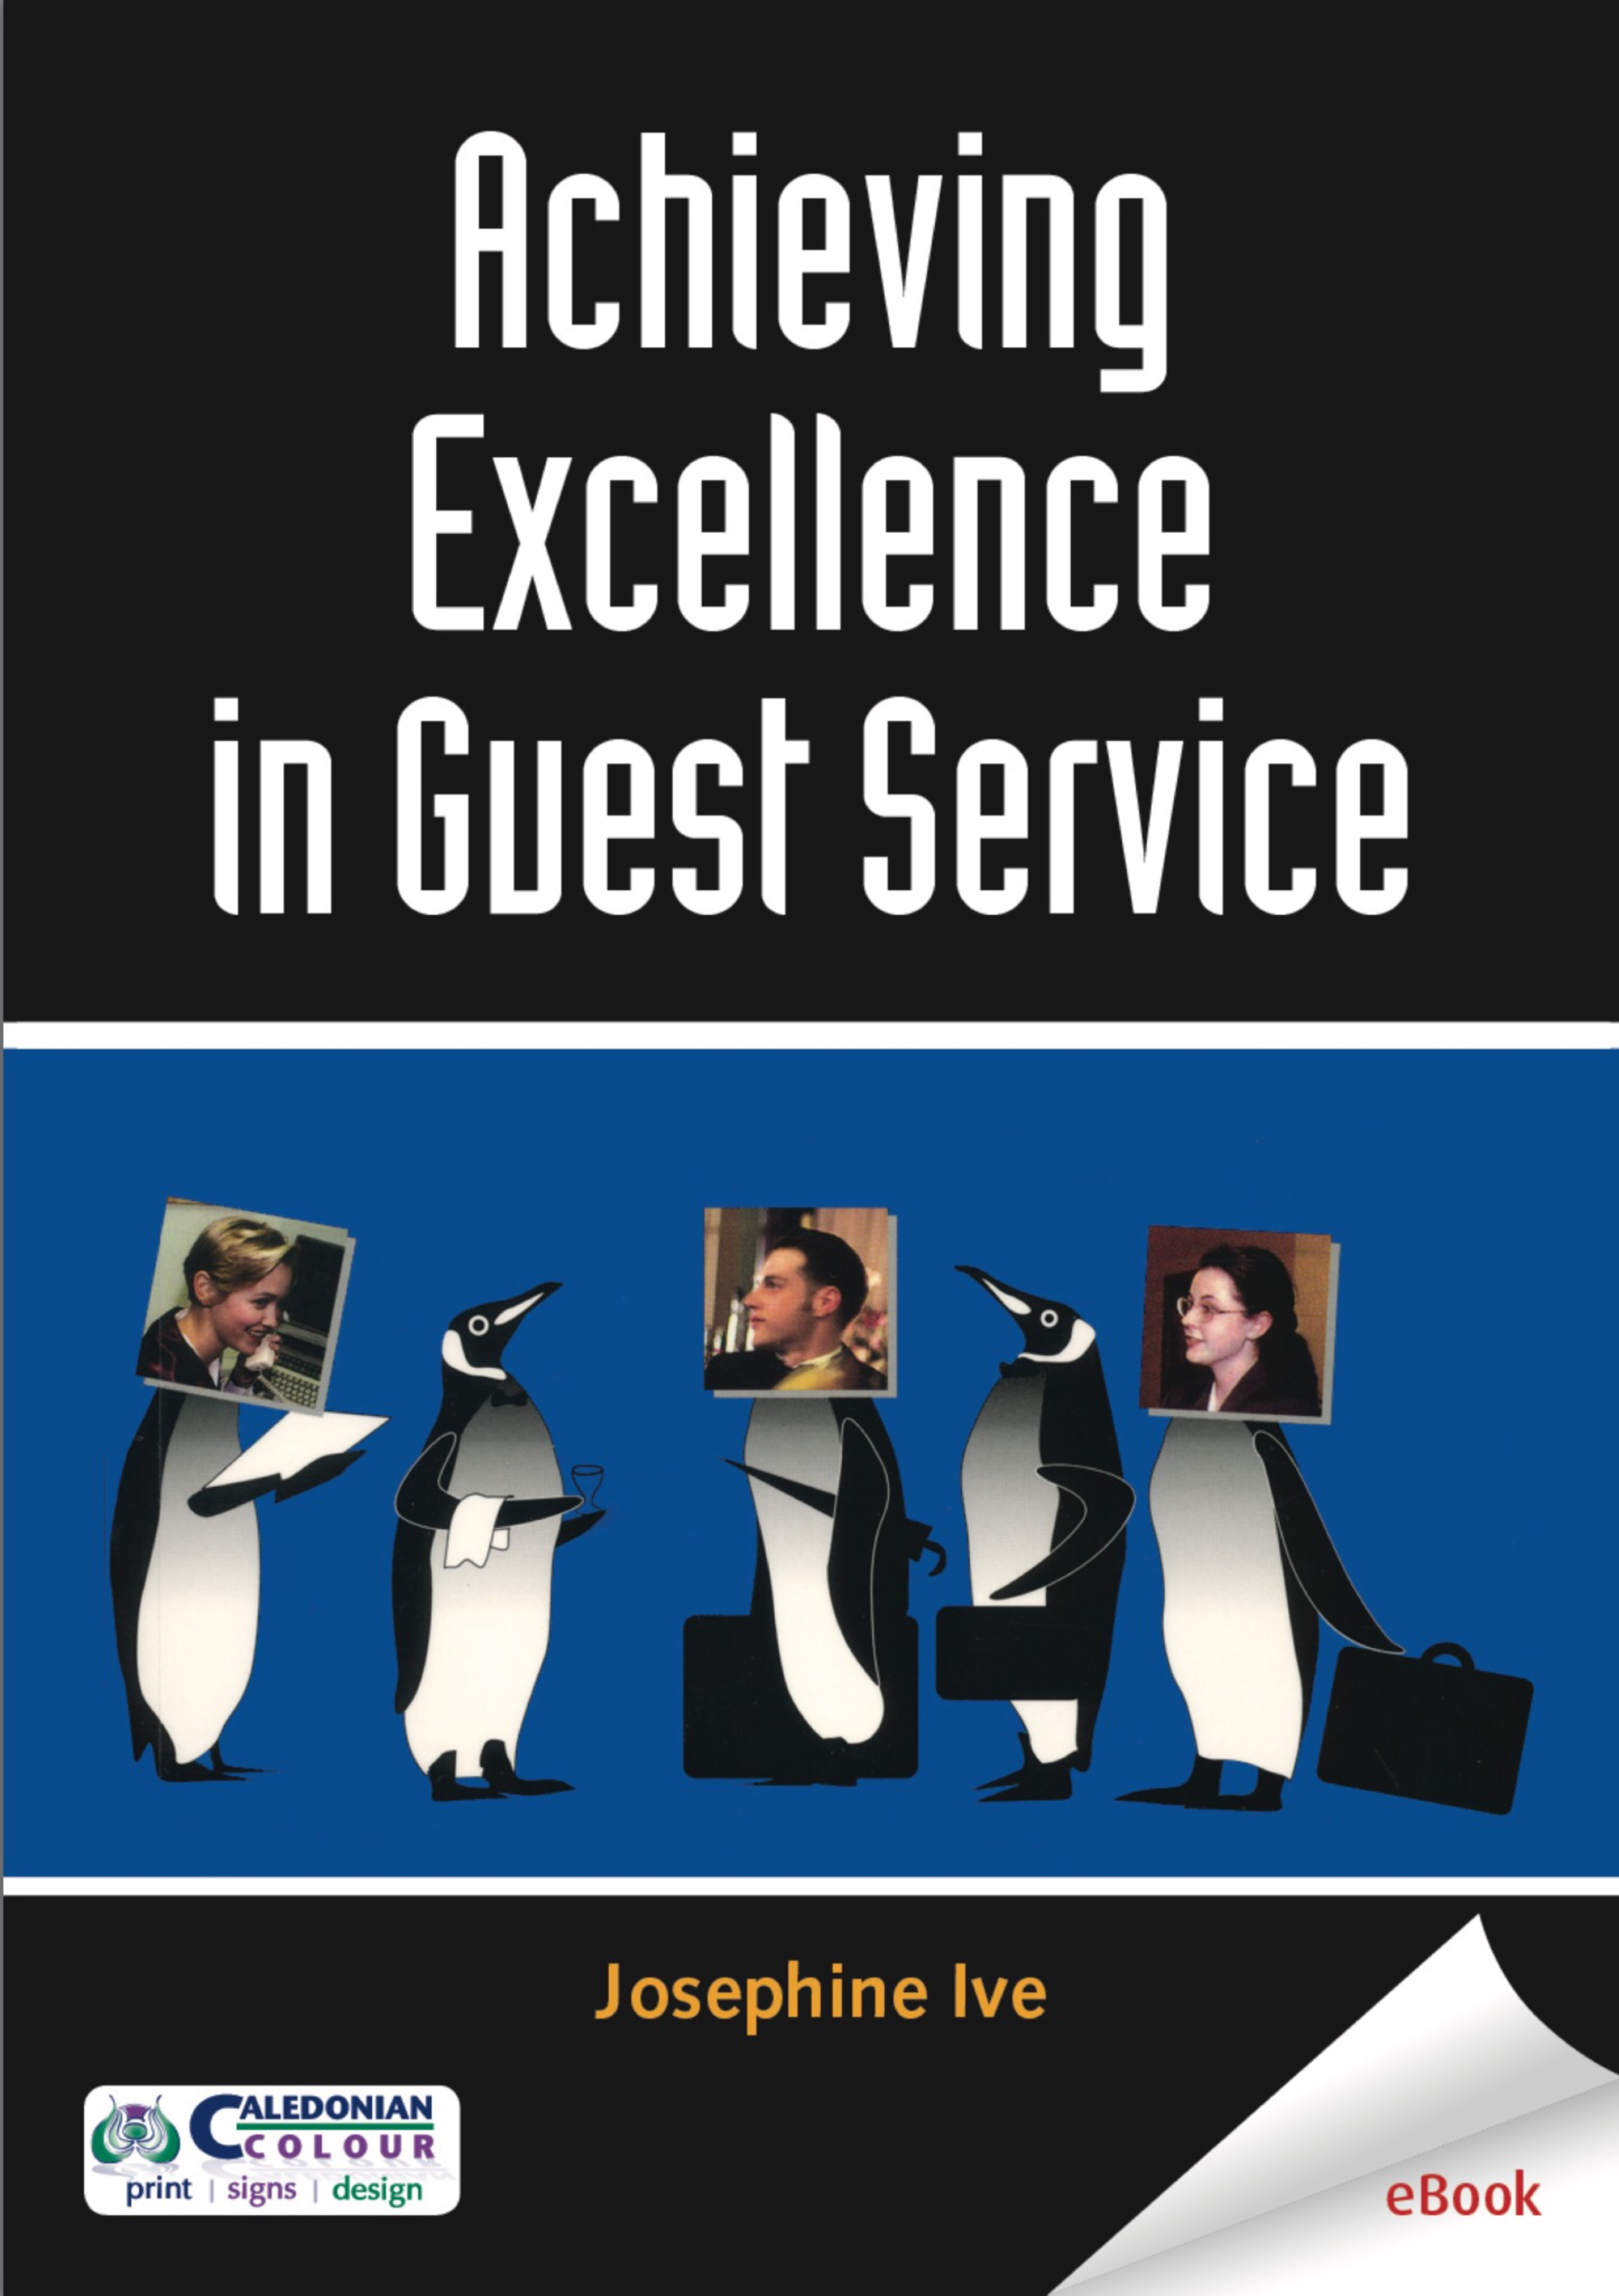 E-Book version - Achieving Excellence in Guest Service